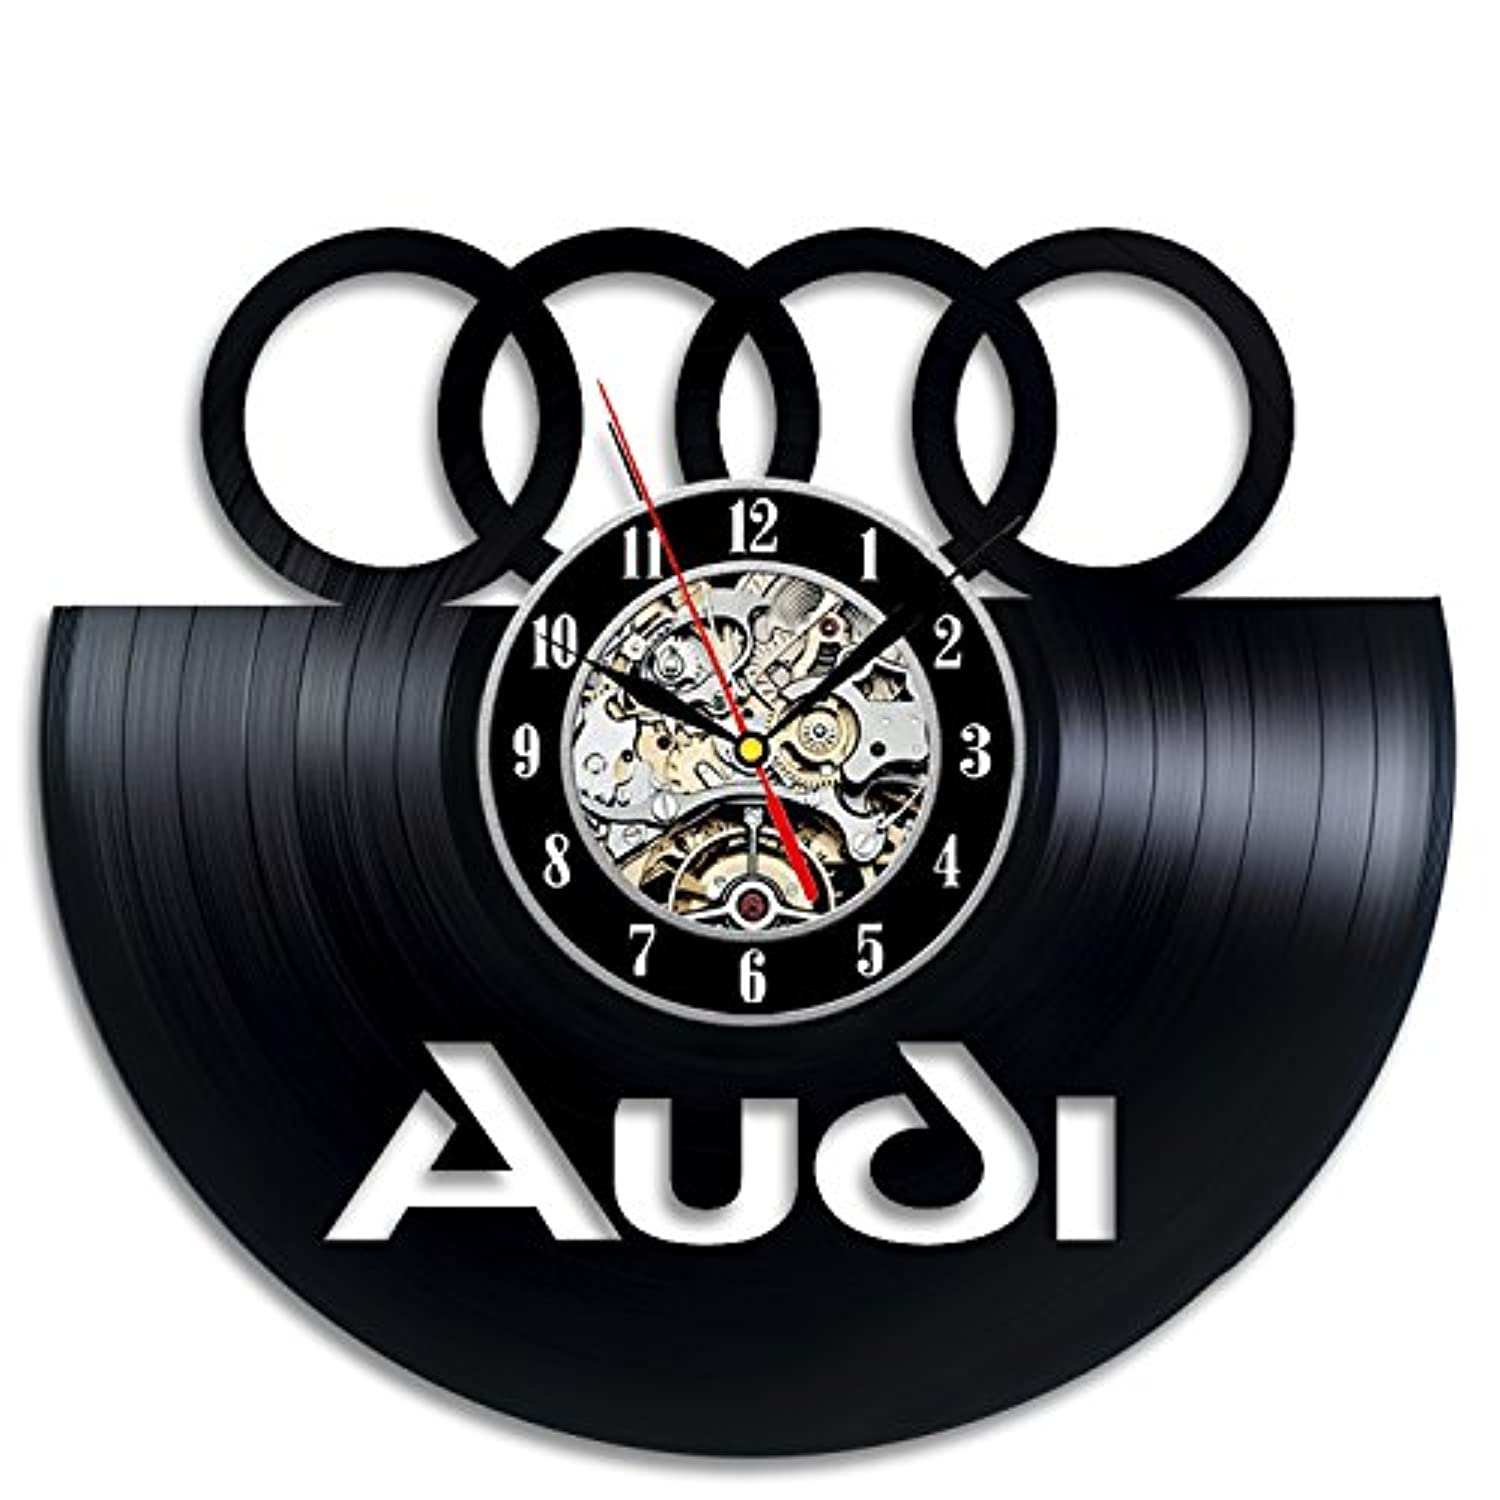 Audi Gift Art Decor Wall Clock Home Record Vintage Decoration - Win a prize for feedback